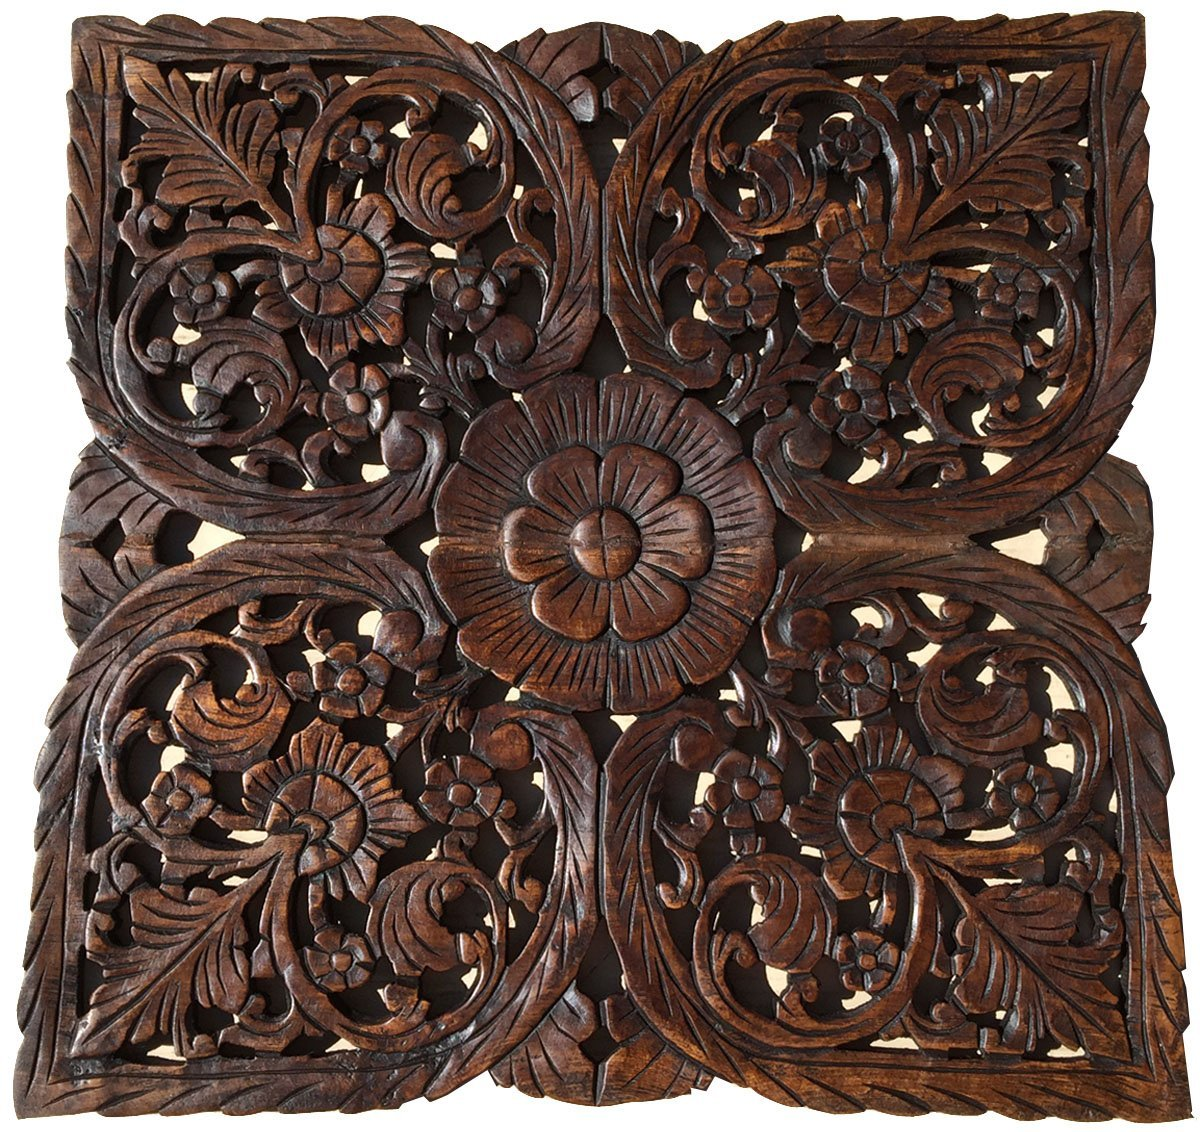 Buy Rustic Wood Wall Decor Large Tropical Carved Wood Plaque